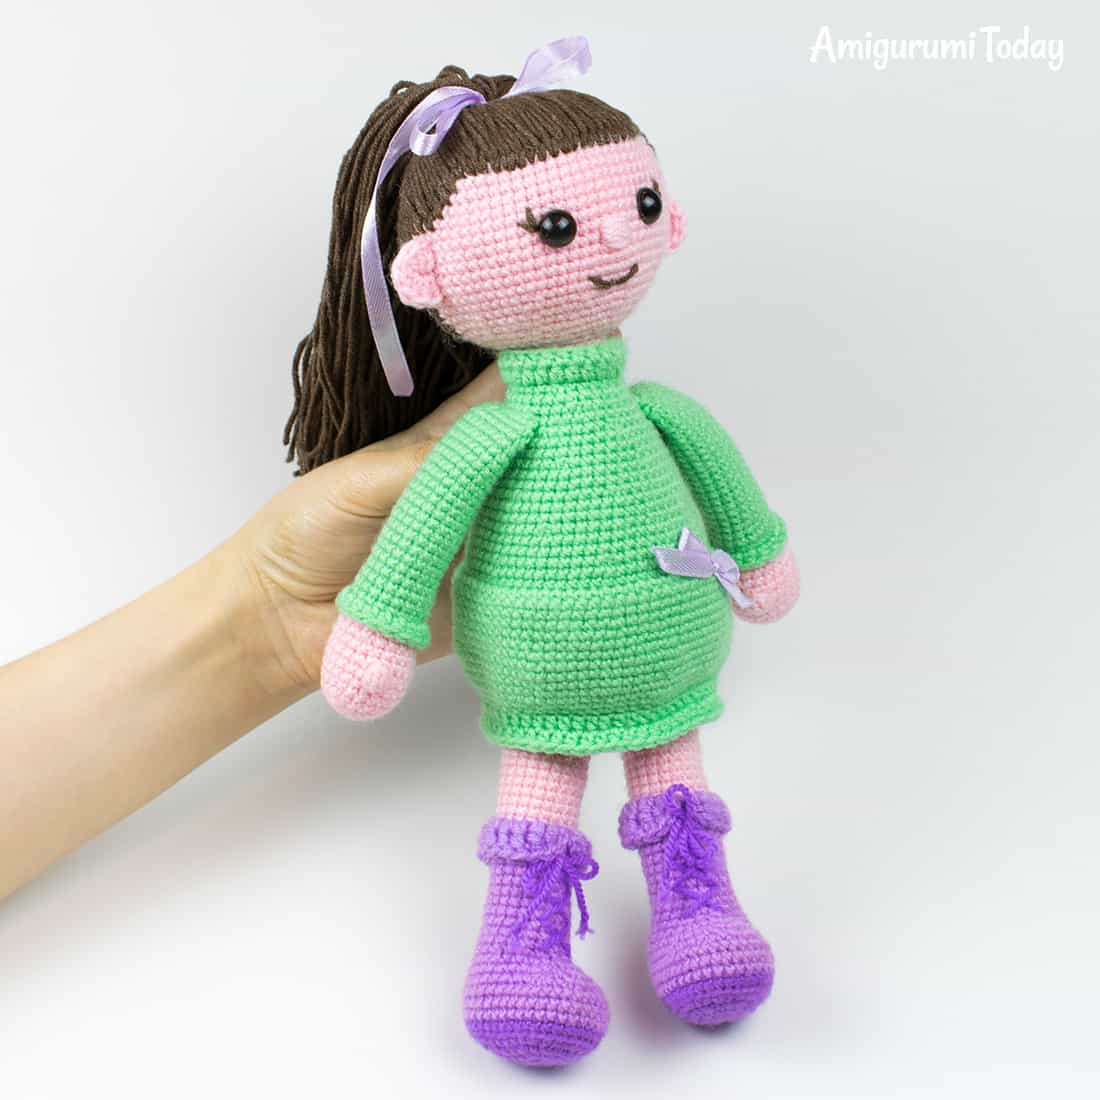 Lulu Doll amigurumi - Free crochet pattern by Amigurumi Today